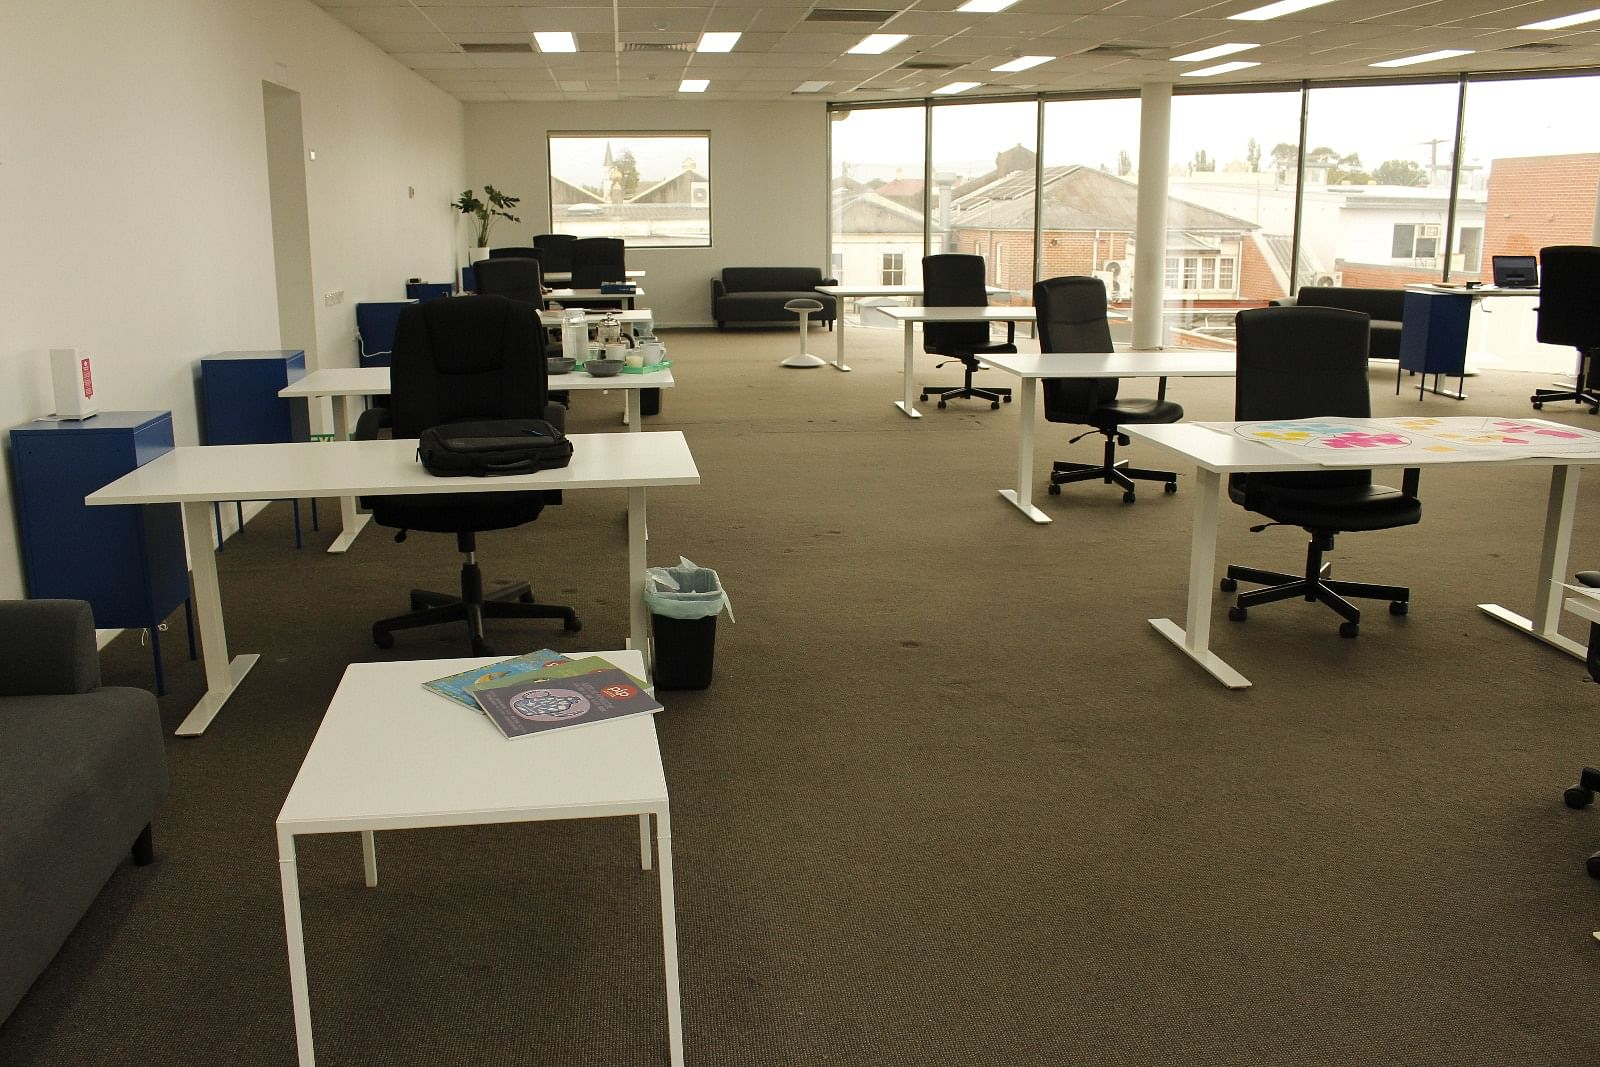 Desk spaces available for free on a rolling 30-day, case-by-case basis until the end of June.